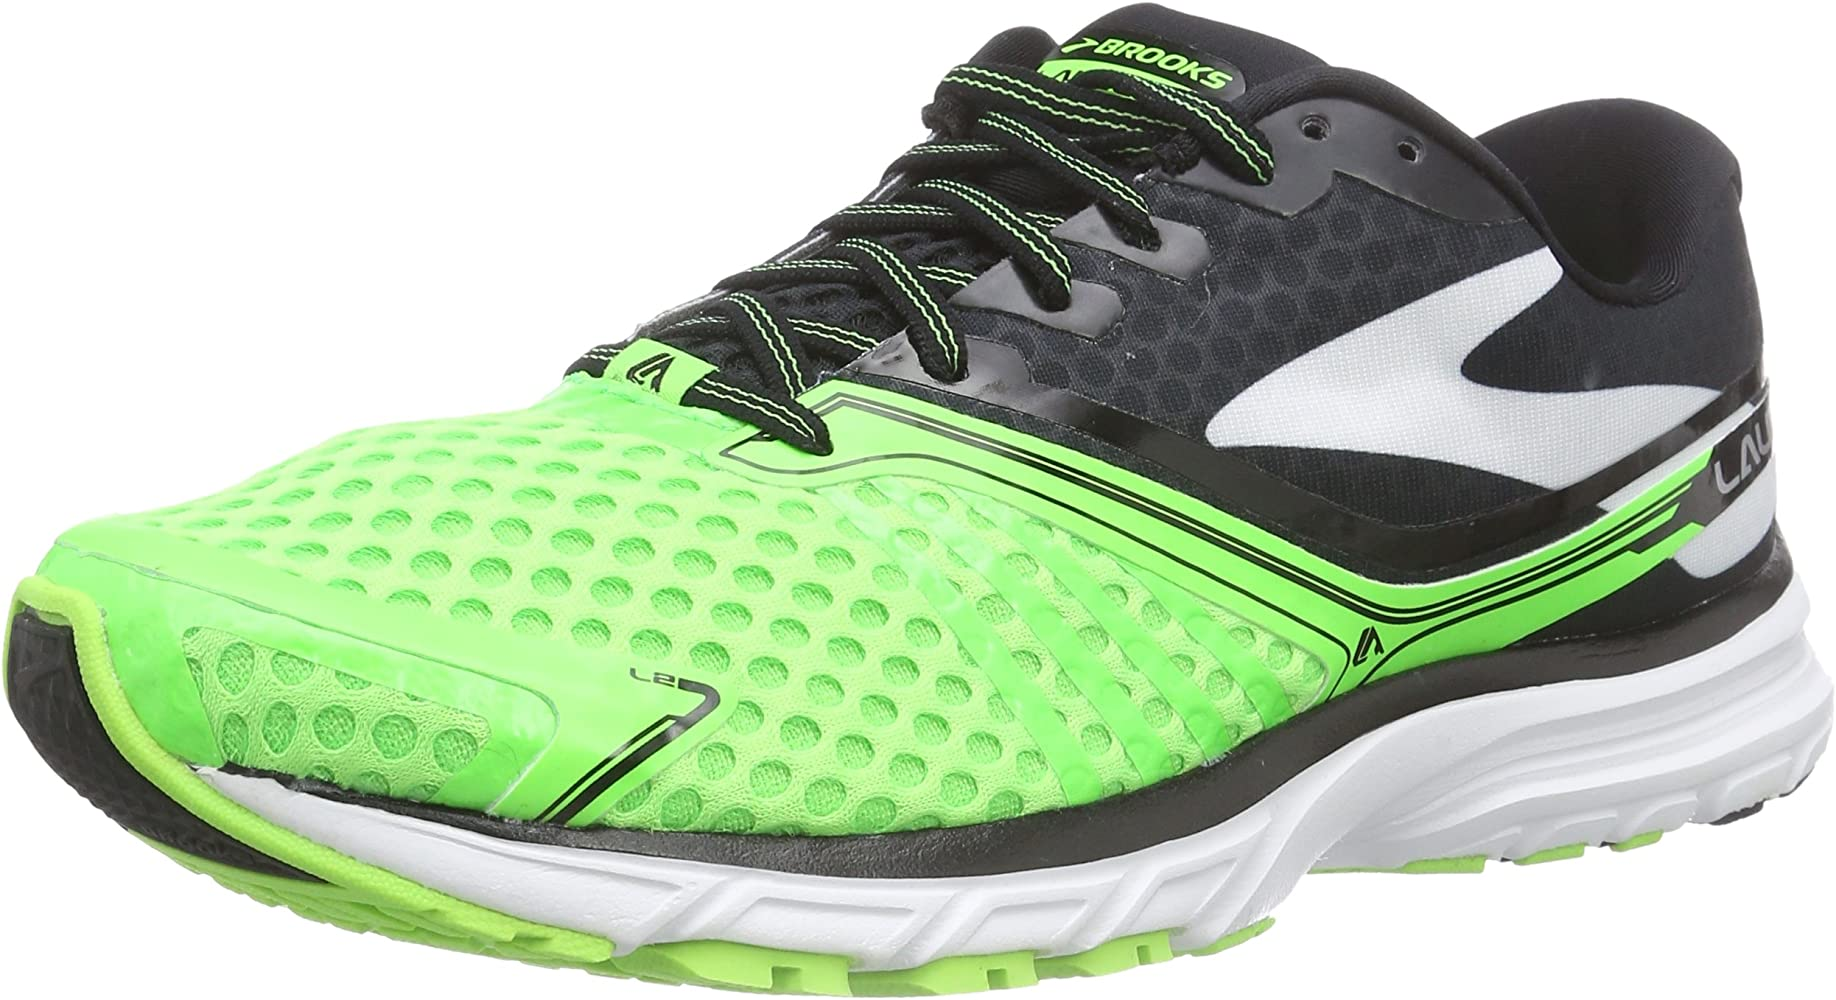 BrooksLaunch 2 - Zapatillas de Running Hombre, color multicolor, talla 41: Amazon.es: Zapatos y complementos